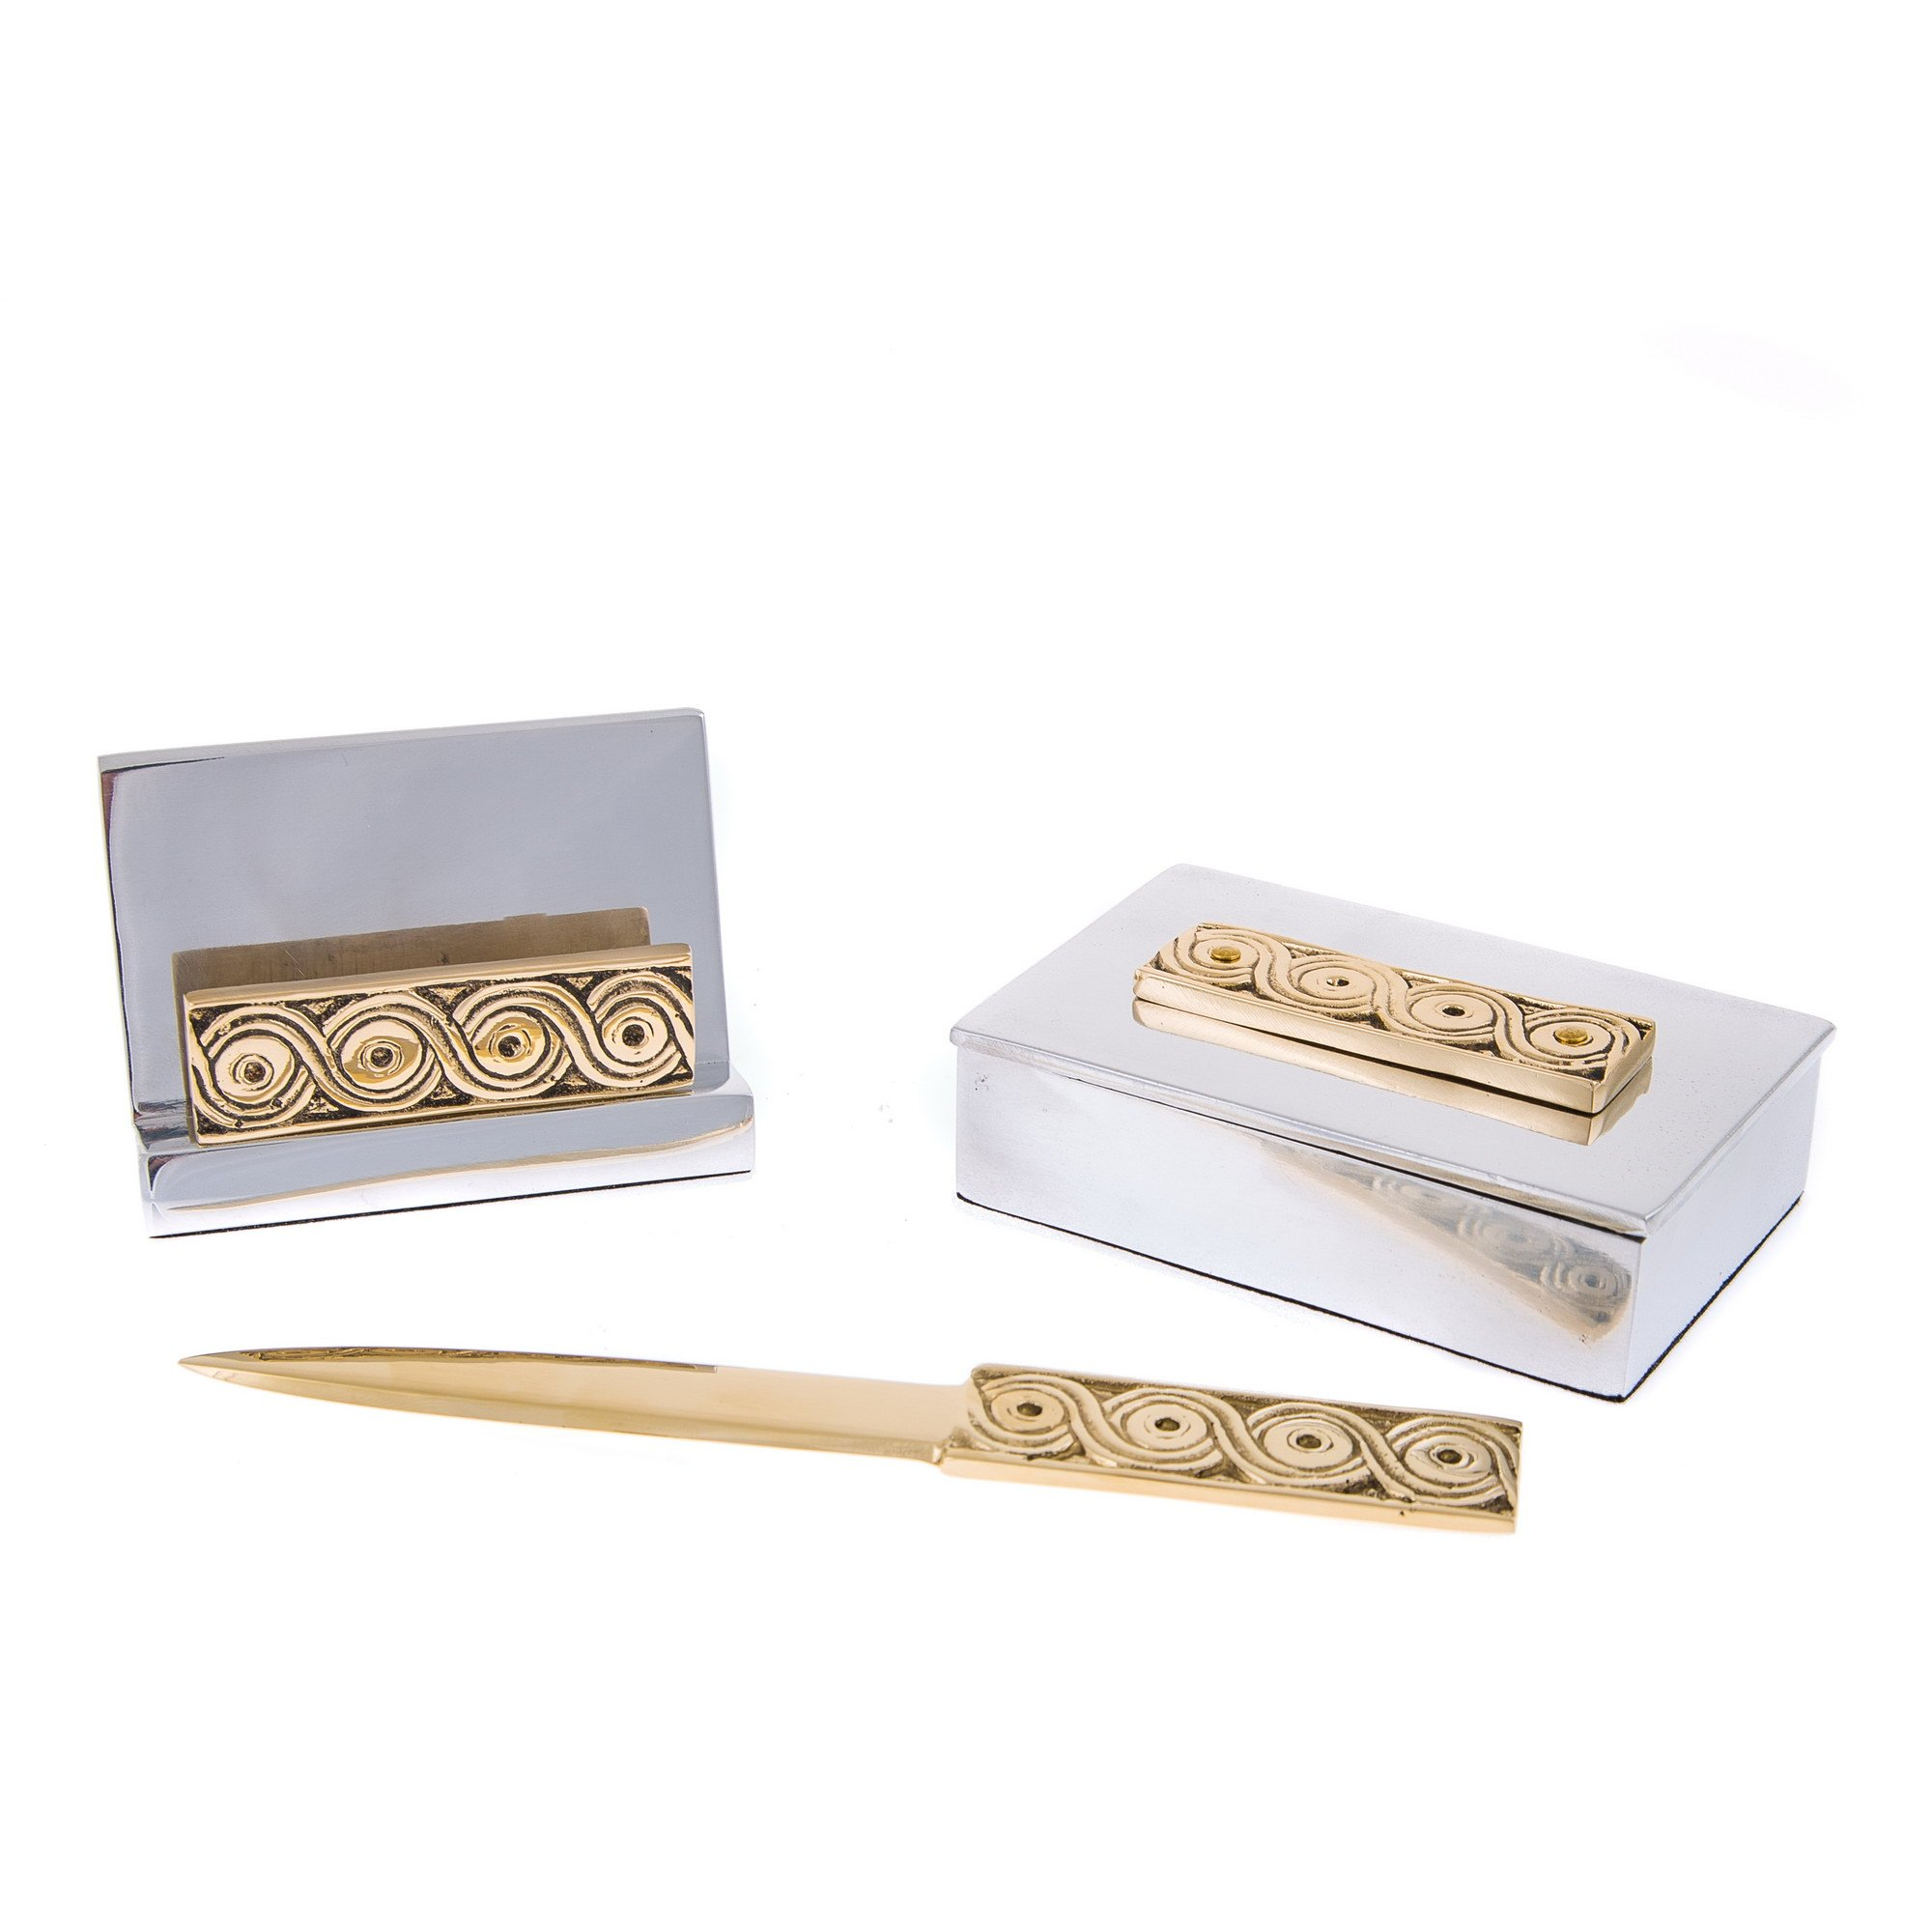 EliteCrafters Set of 3 Stylish Solid Metal Office Desk Accessories Handmade, Greek Archaic Design - Decor Storage Box, Business Card Holder & Letter Opener